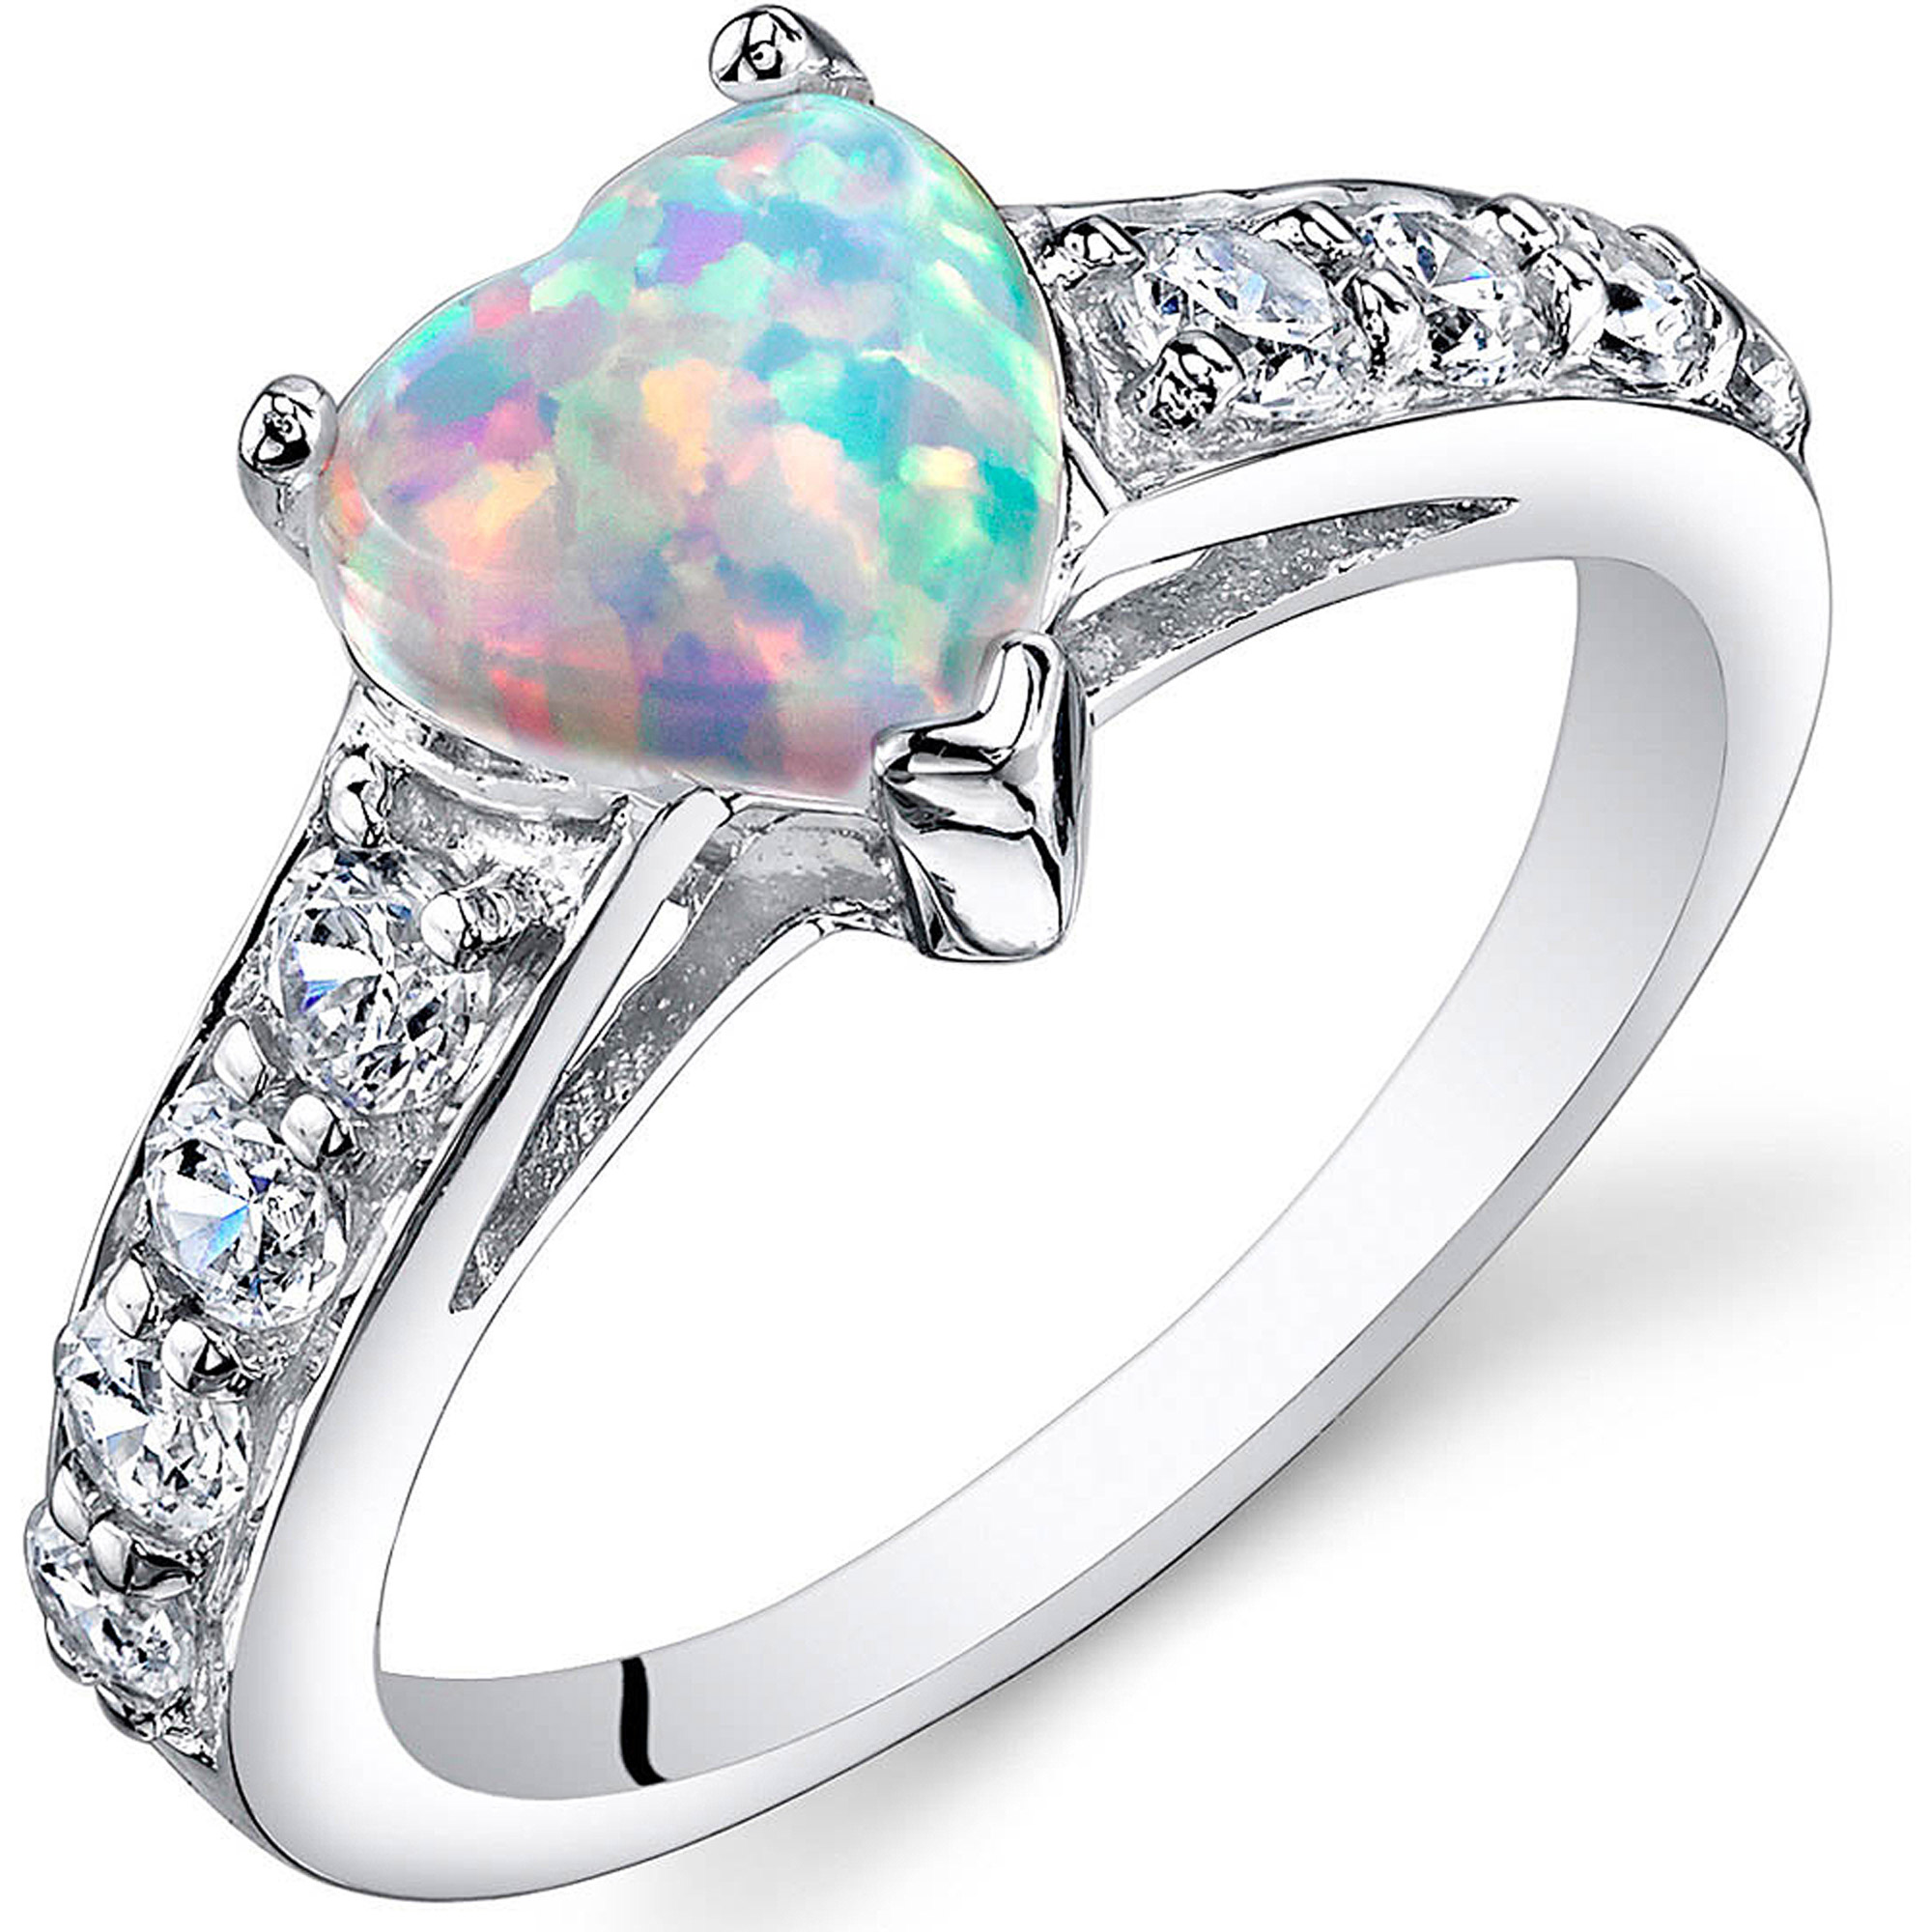 Oravo 1.00 Carat T.G.W. Heart-Shape Created Opal Rhodium over Sterling Silver Ring